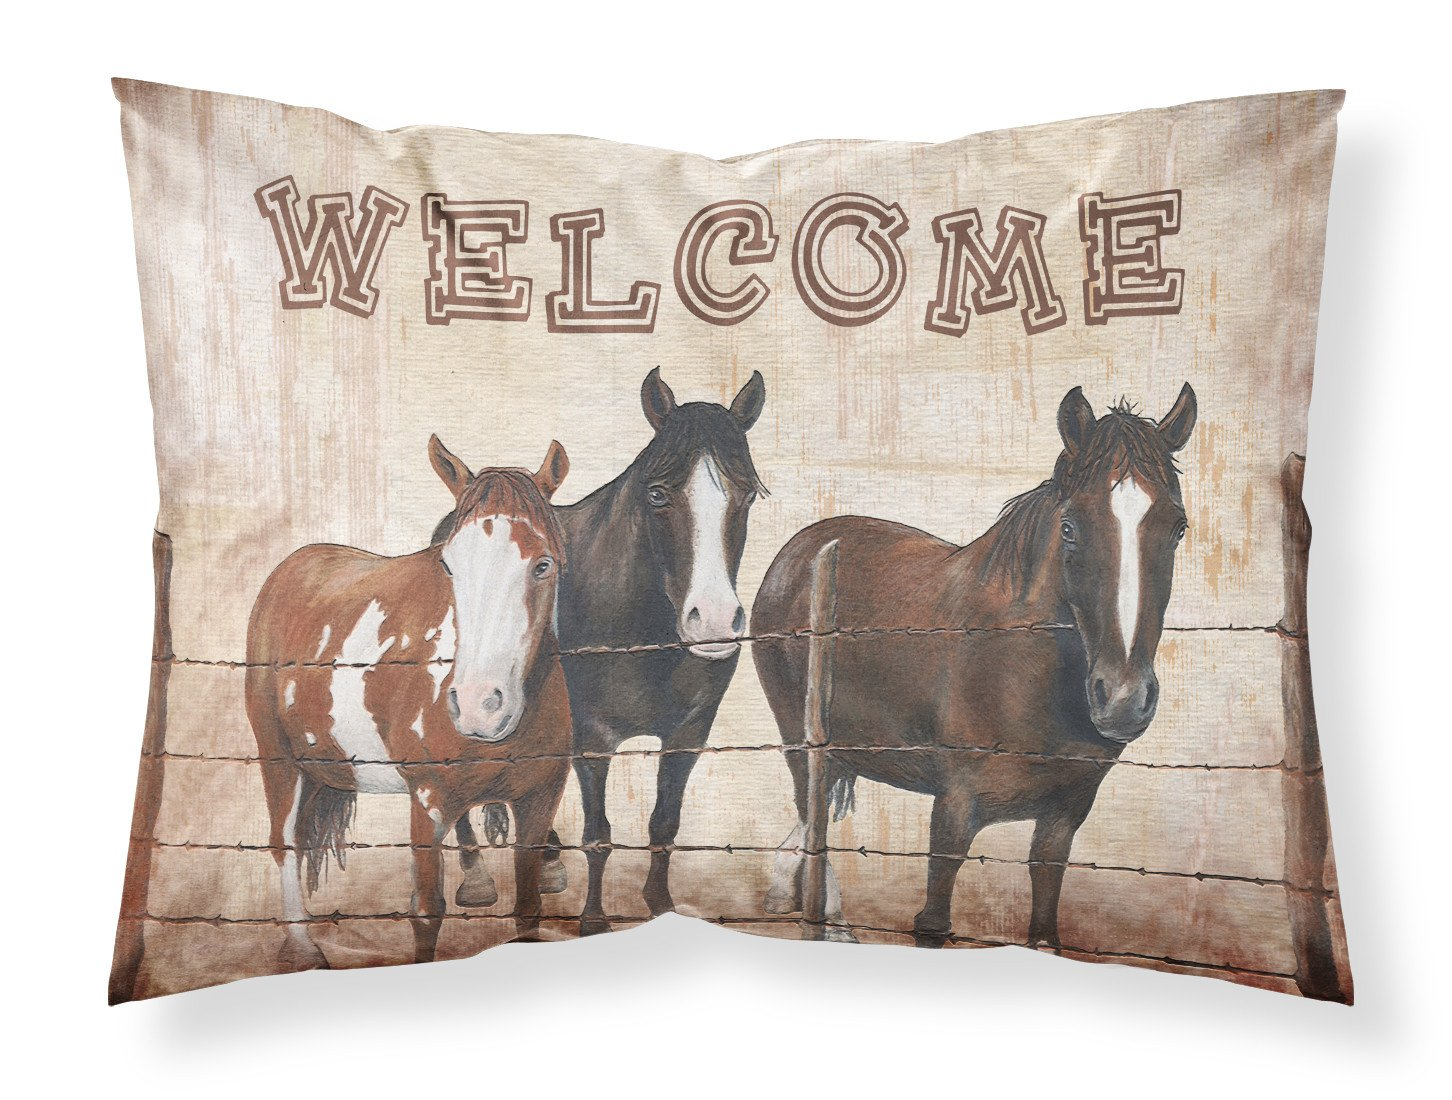 Welcome Mat with Horses Moisture wicking Fabric standard pillowcase SB3059PILLOWCASE by Caroline's Treasures